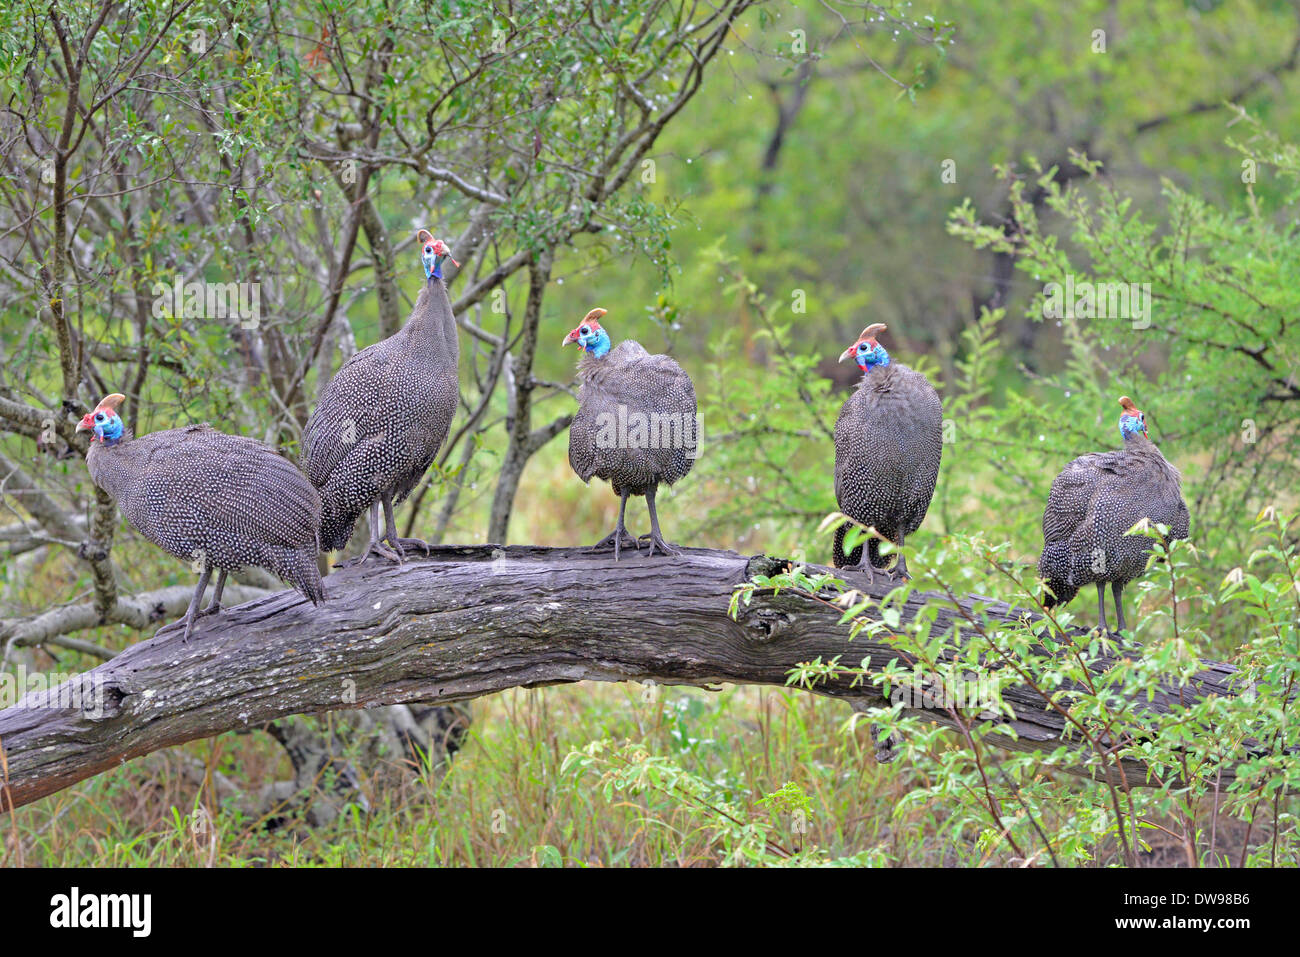 5 guinea fowl sitting on a log in the rain, Kruger park, South Africa - Stock Image